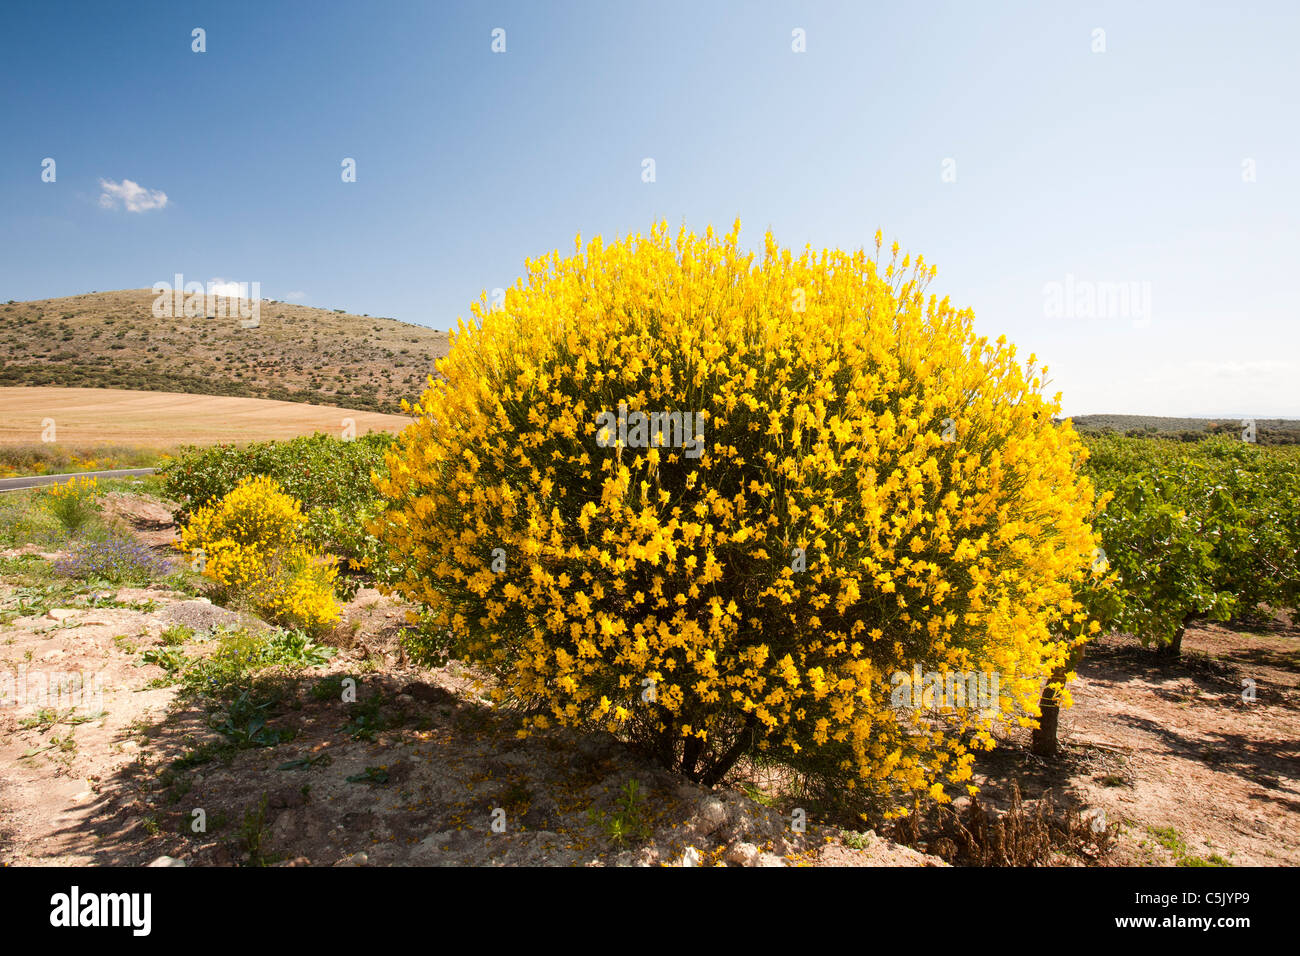 Yellow flowering bush stock photos yellow flowering bush stock a yellow flowering bush in an orchard in andalucia spain stock image mightylinksfo